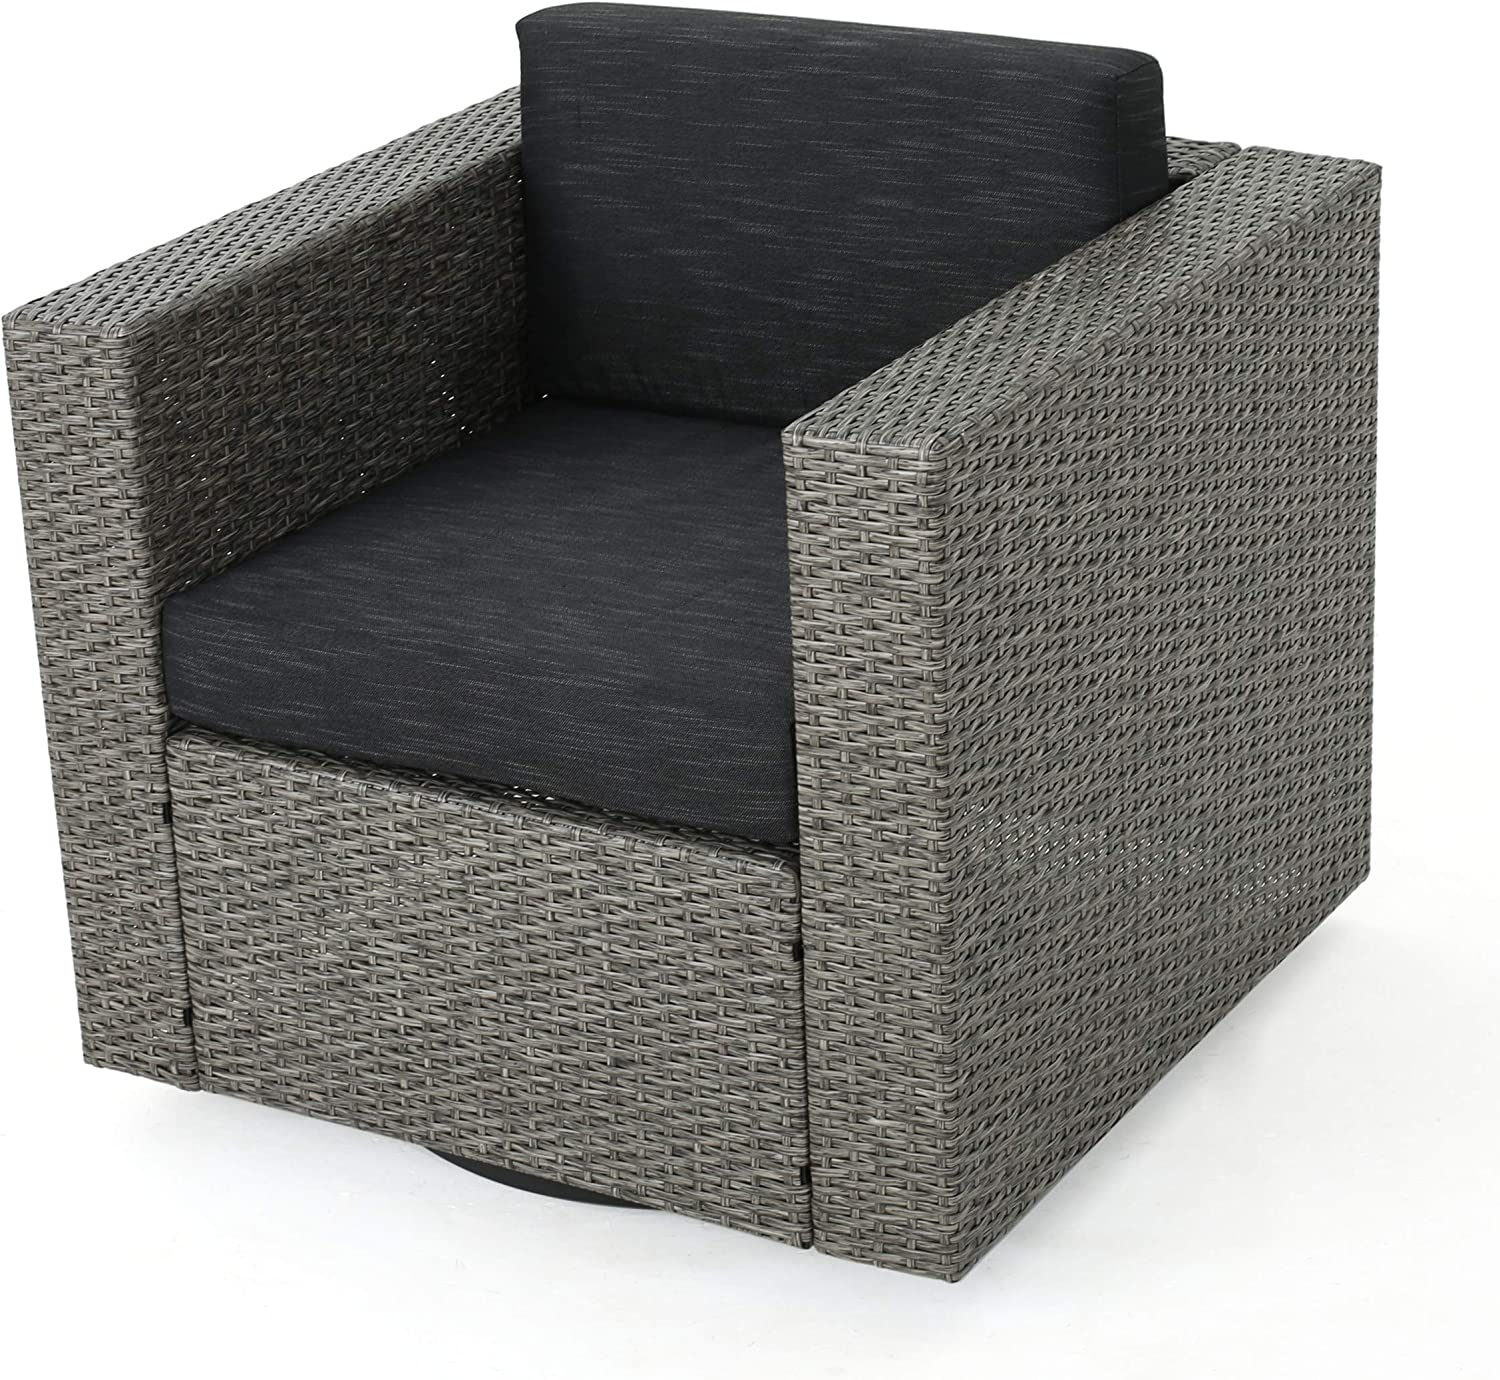 Venice Outdoor Dark Brown Wicker Swivel Club Chair with Beige Water Resistant Cushions (Single, Mix Black/Dark Grey)